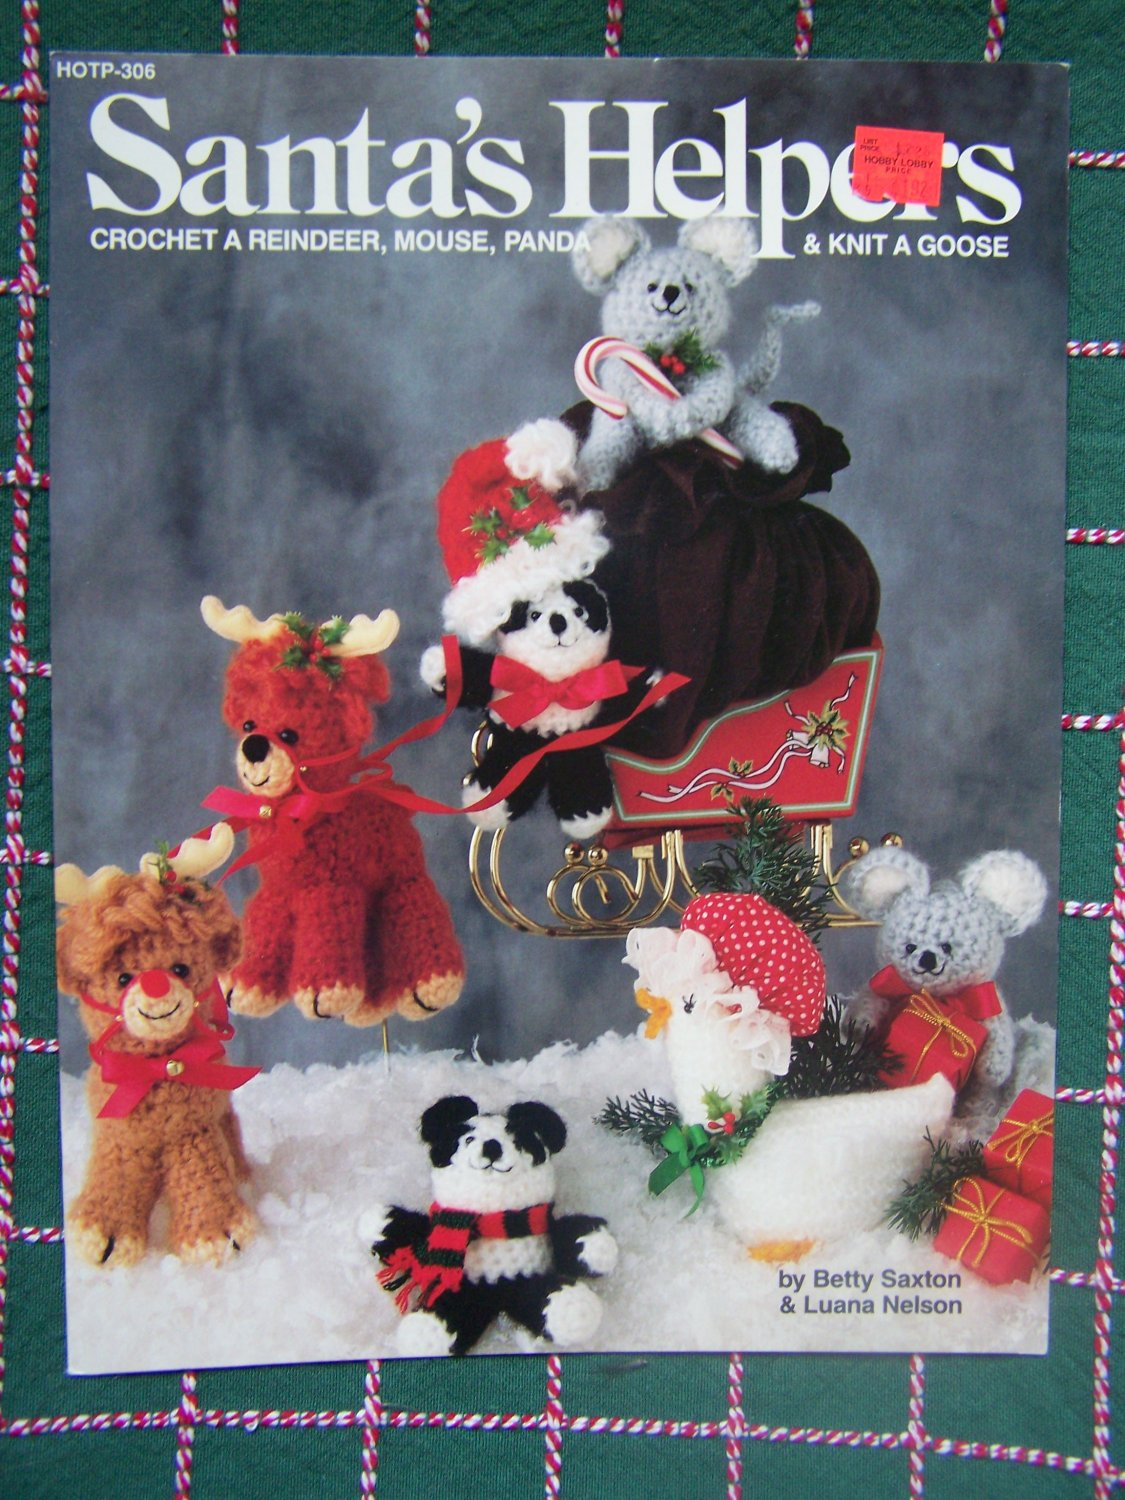 New 1980's Christmas Crochet & Knitting Ornament Patterns Mouse Reindeer Bear Goose